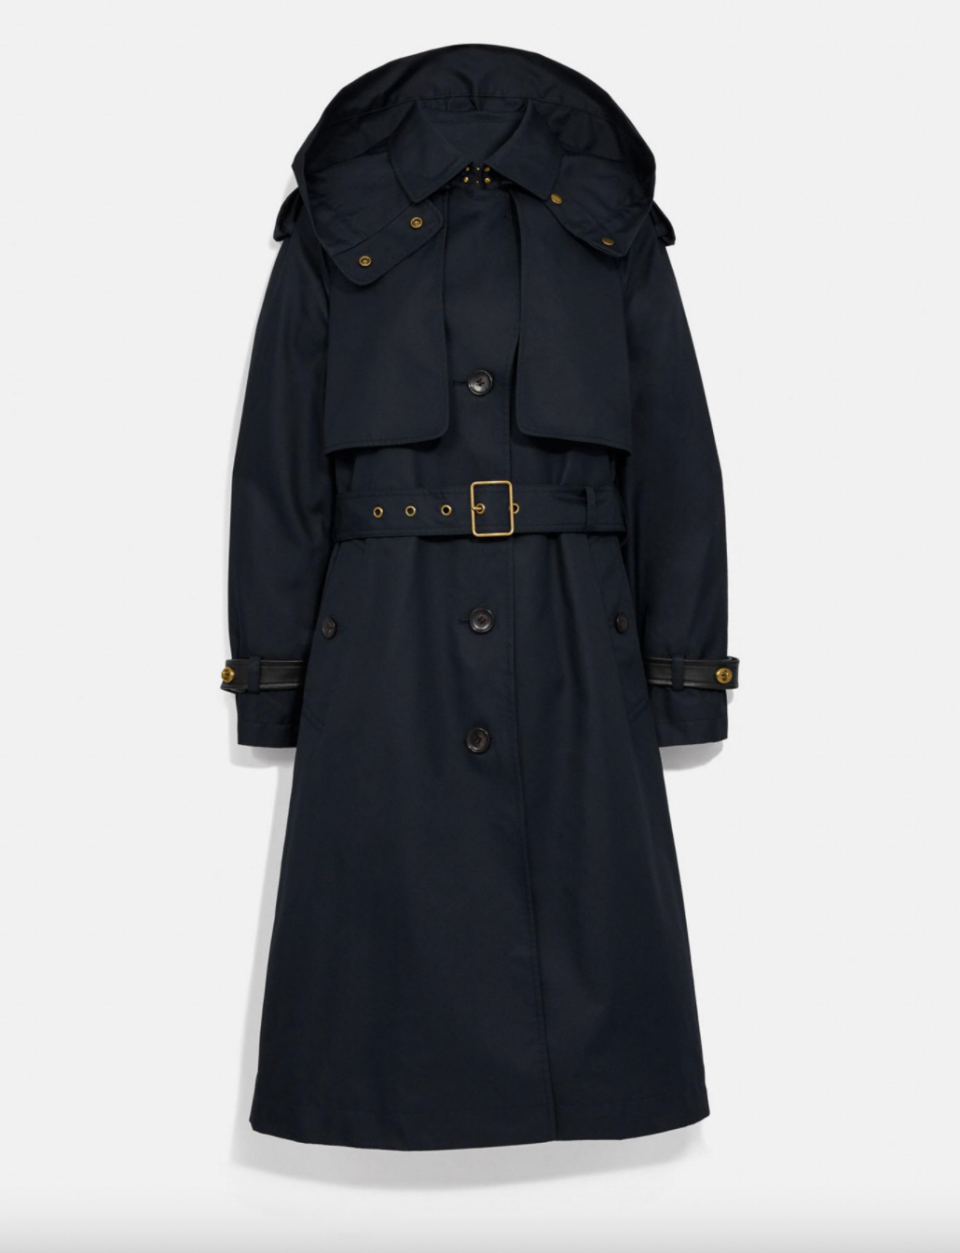 Coach Outlet Hooded Trench (Photo via Coach Outlet)